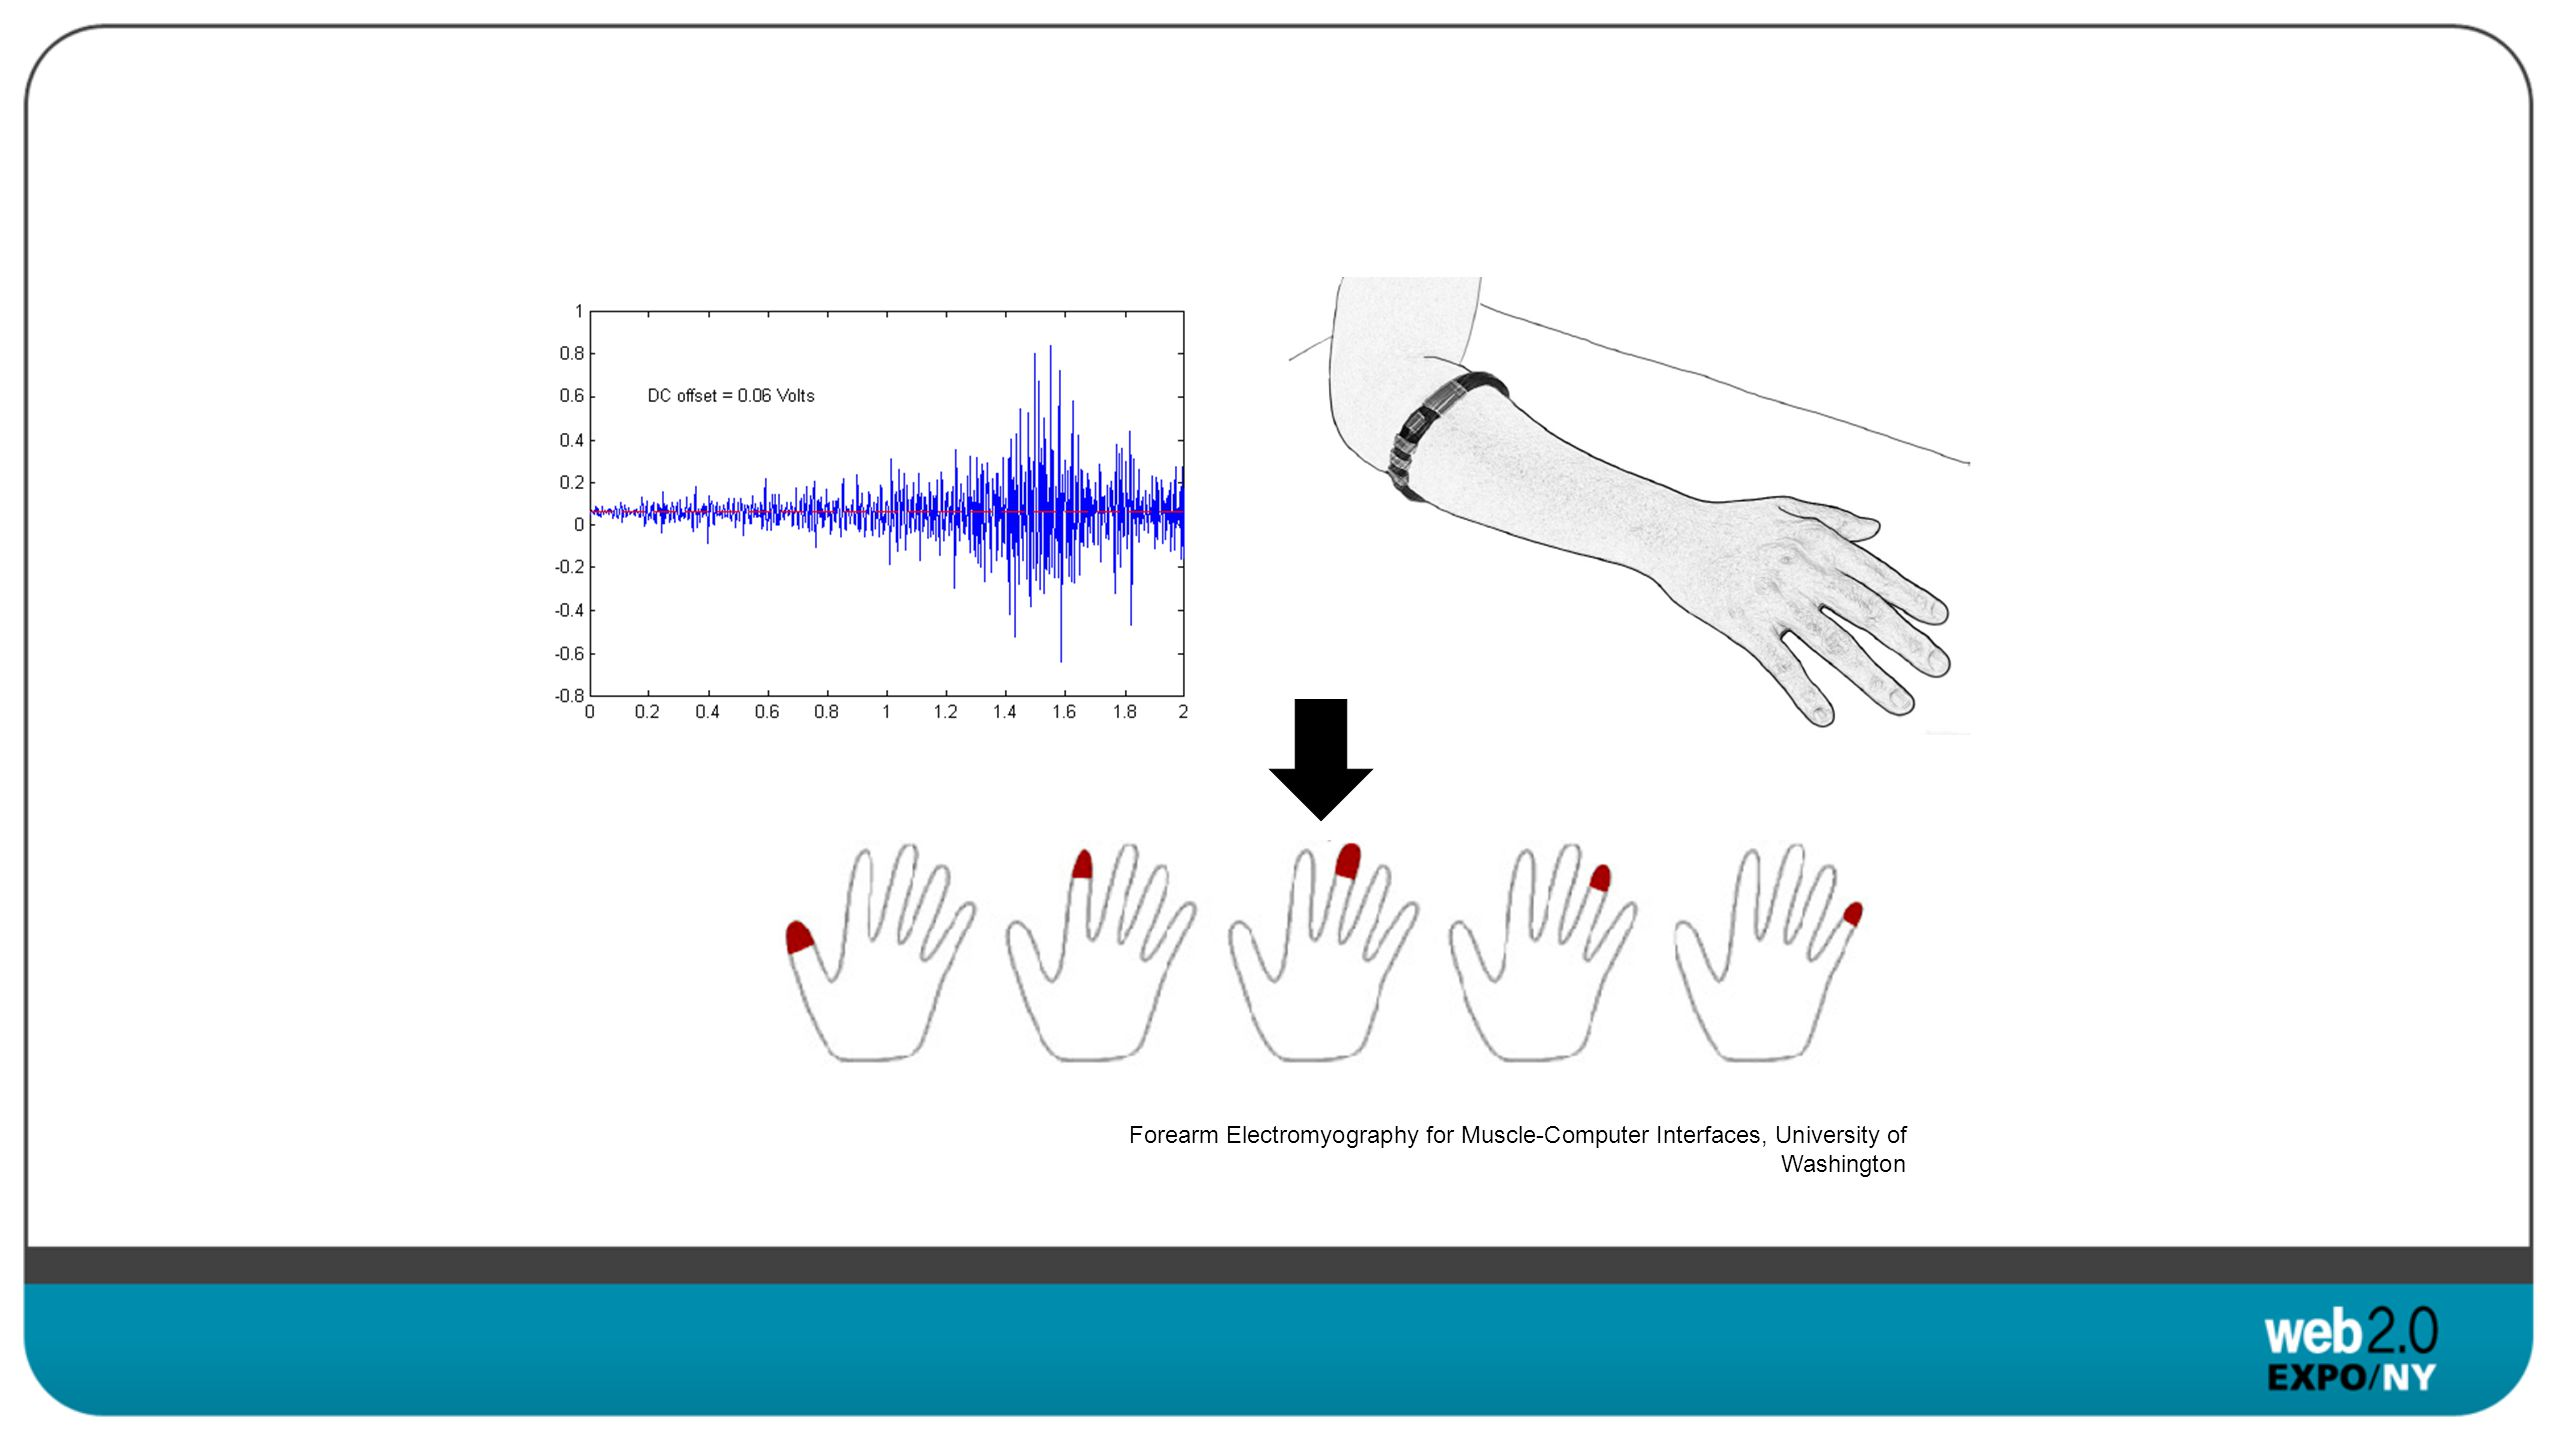 Forearm Electromyography for Muscle-Computer Interfaces, University of Washington